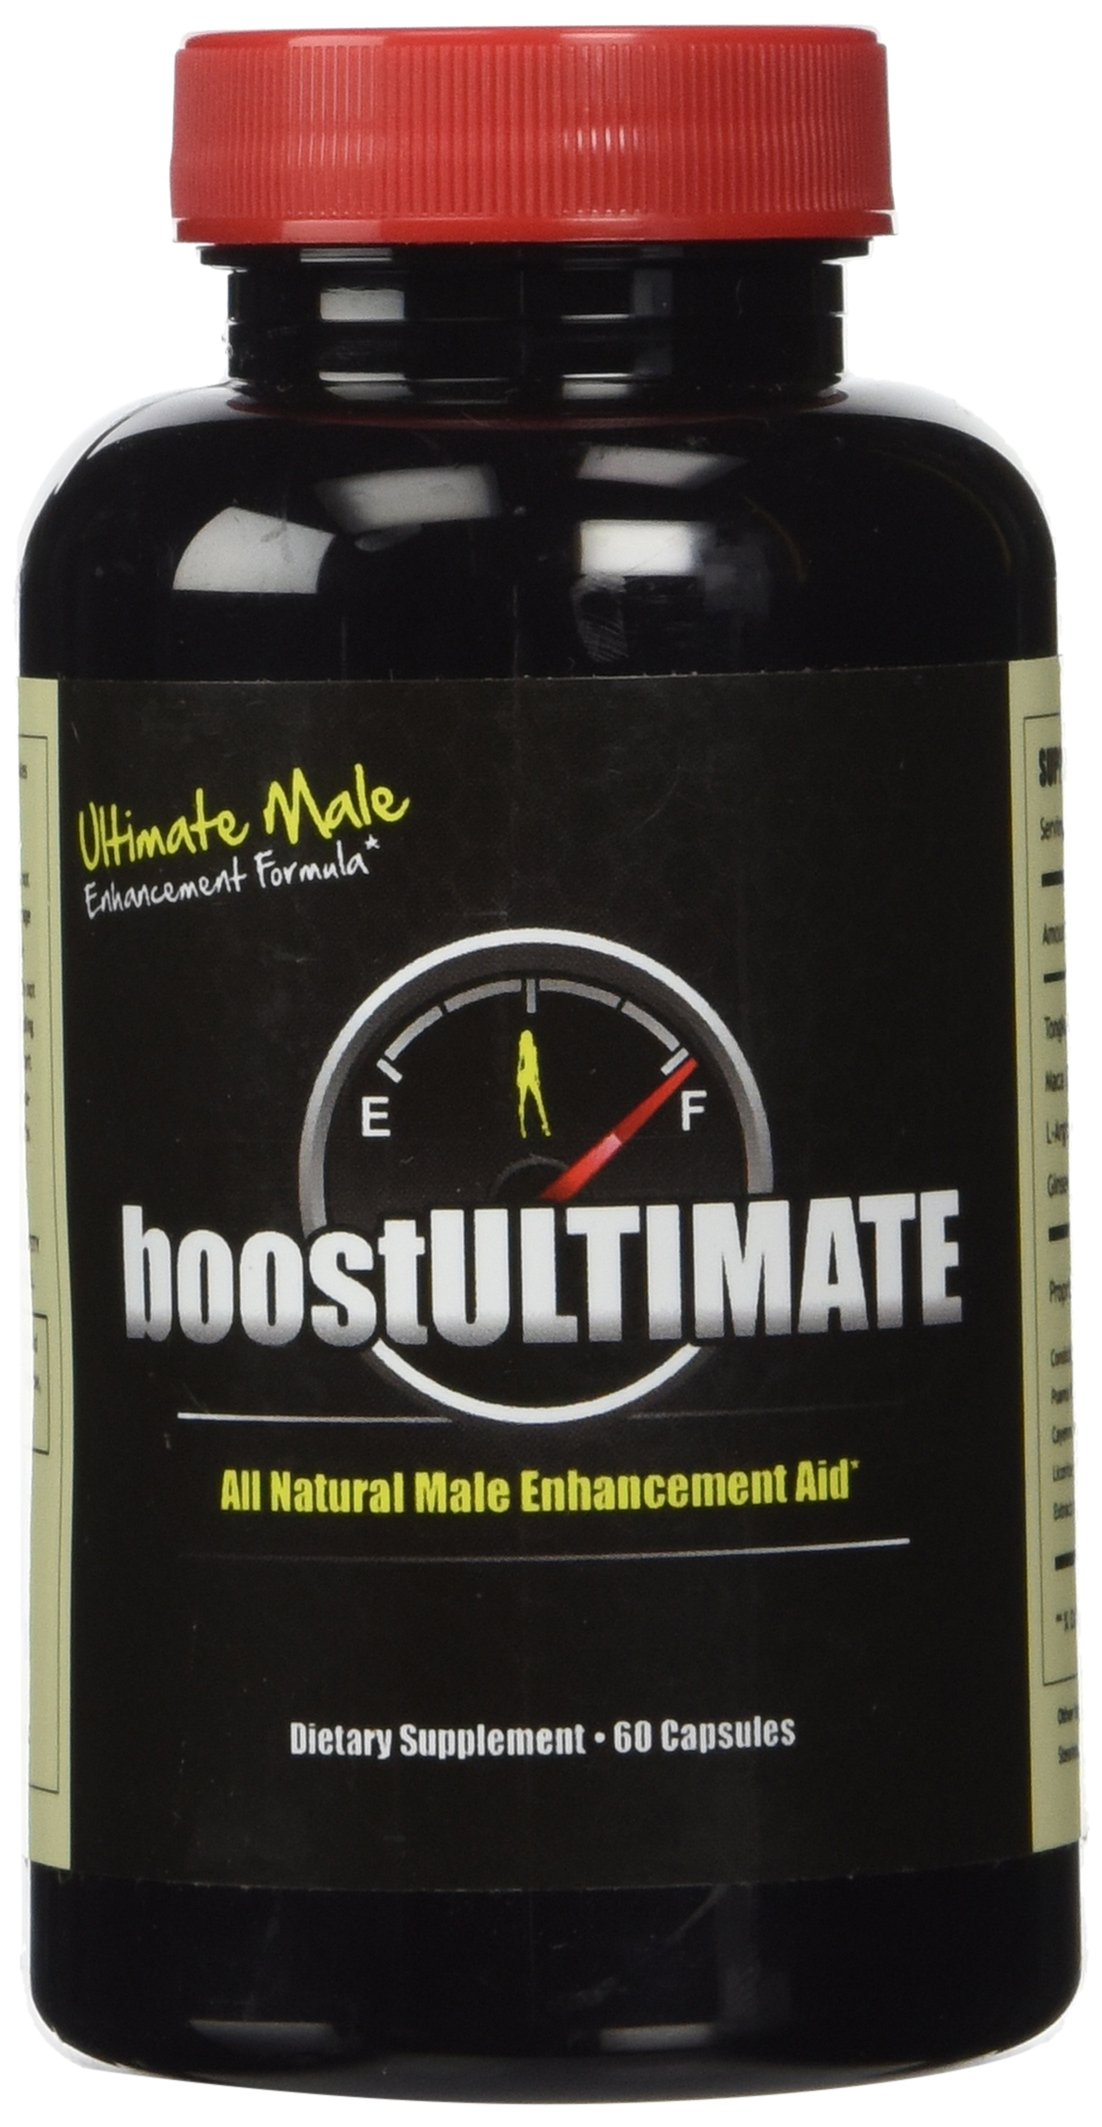 boostULTIMATE - 60 Capsules - Increase Workout Stamina, Muscle Size, Energy & More 1 Month Supply